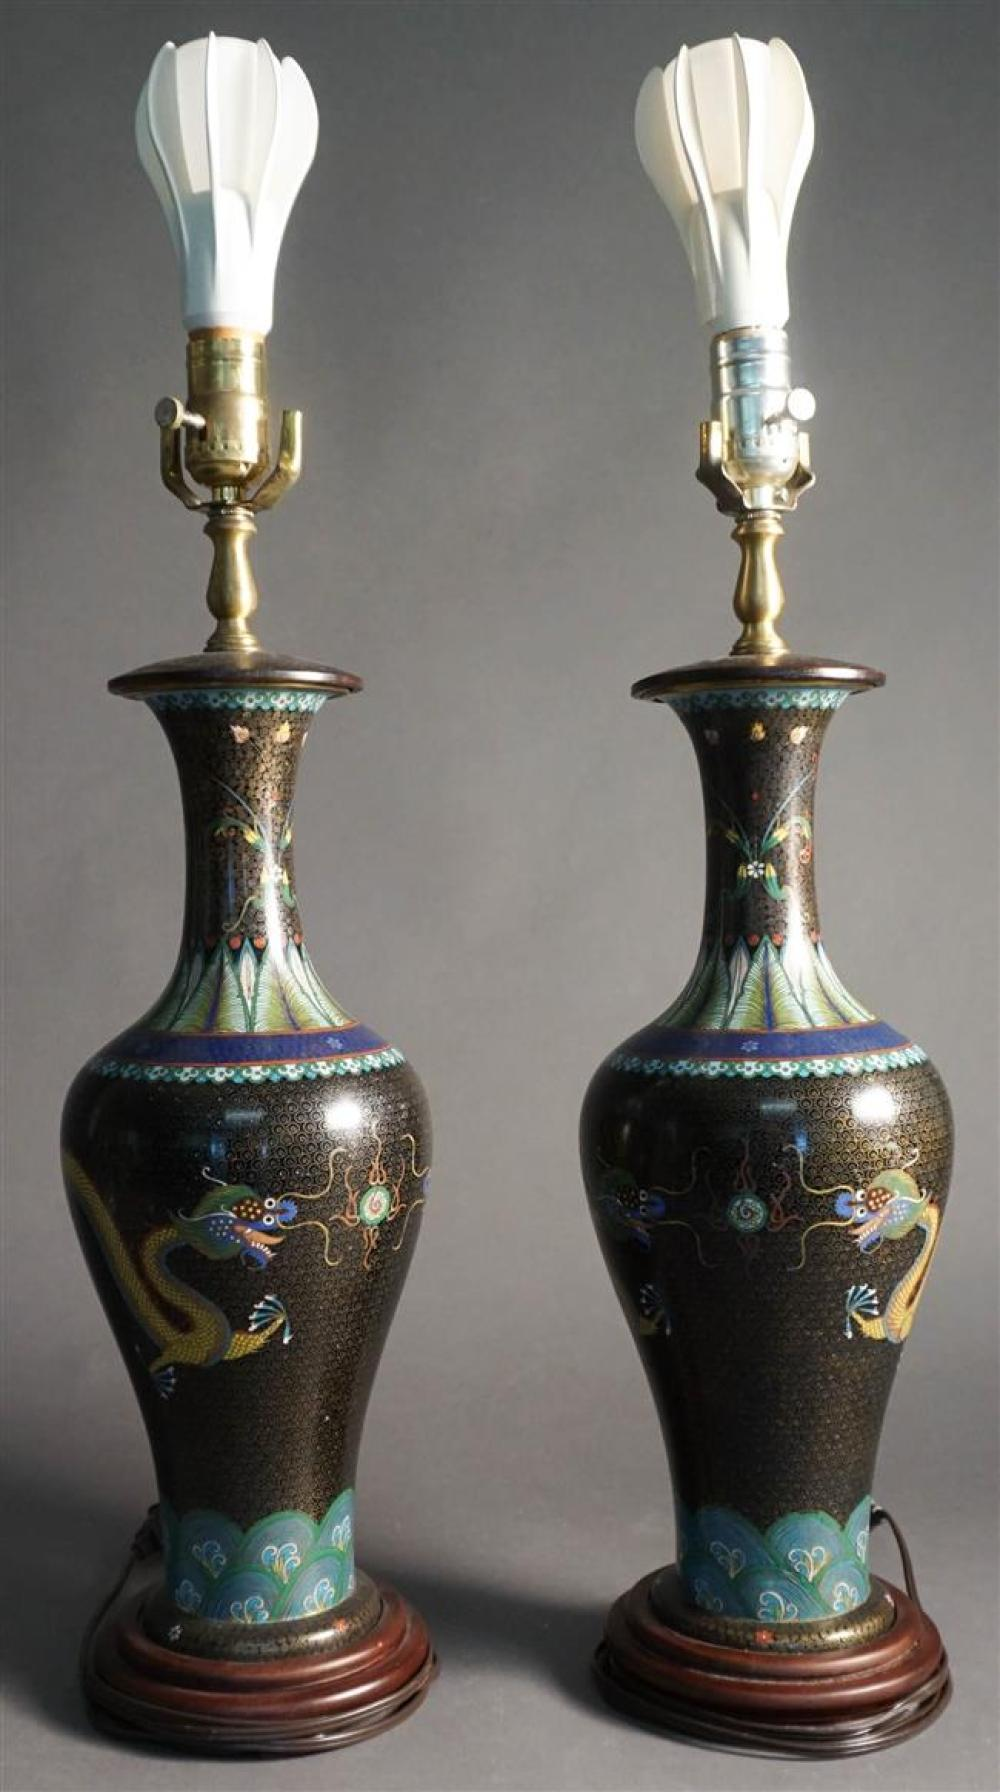 Pair Chinese Cloisonne Enamel Vases mounted as Lamps, H: 33 in